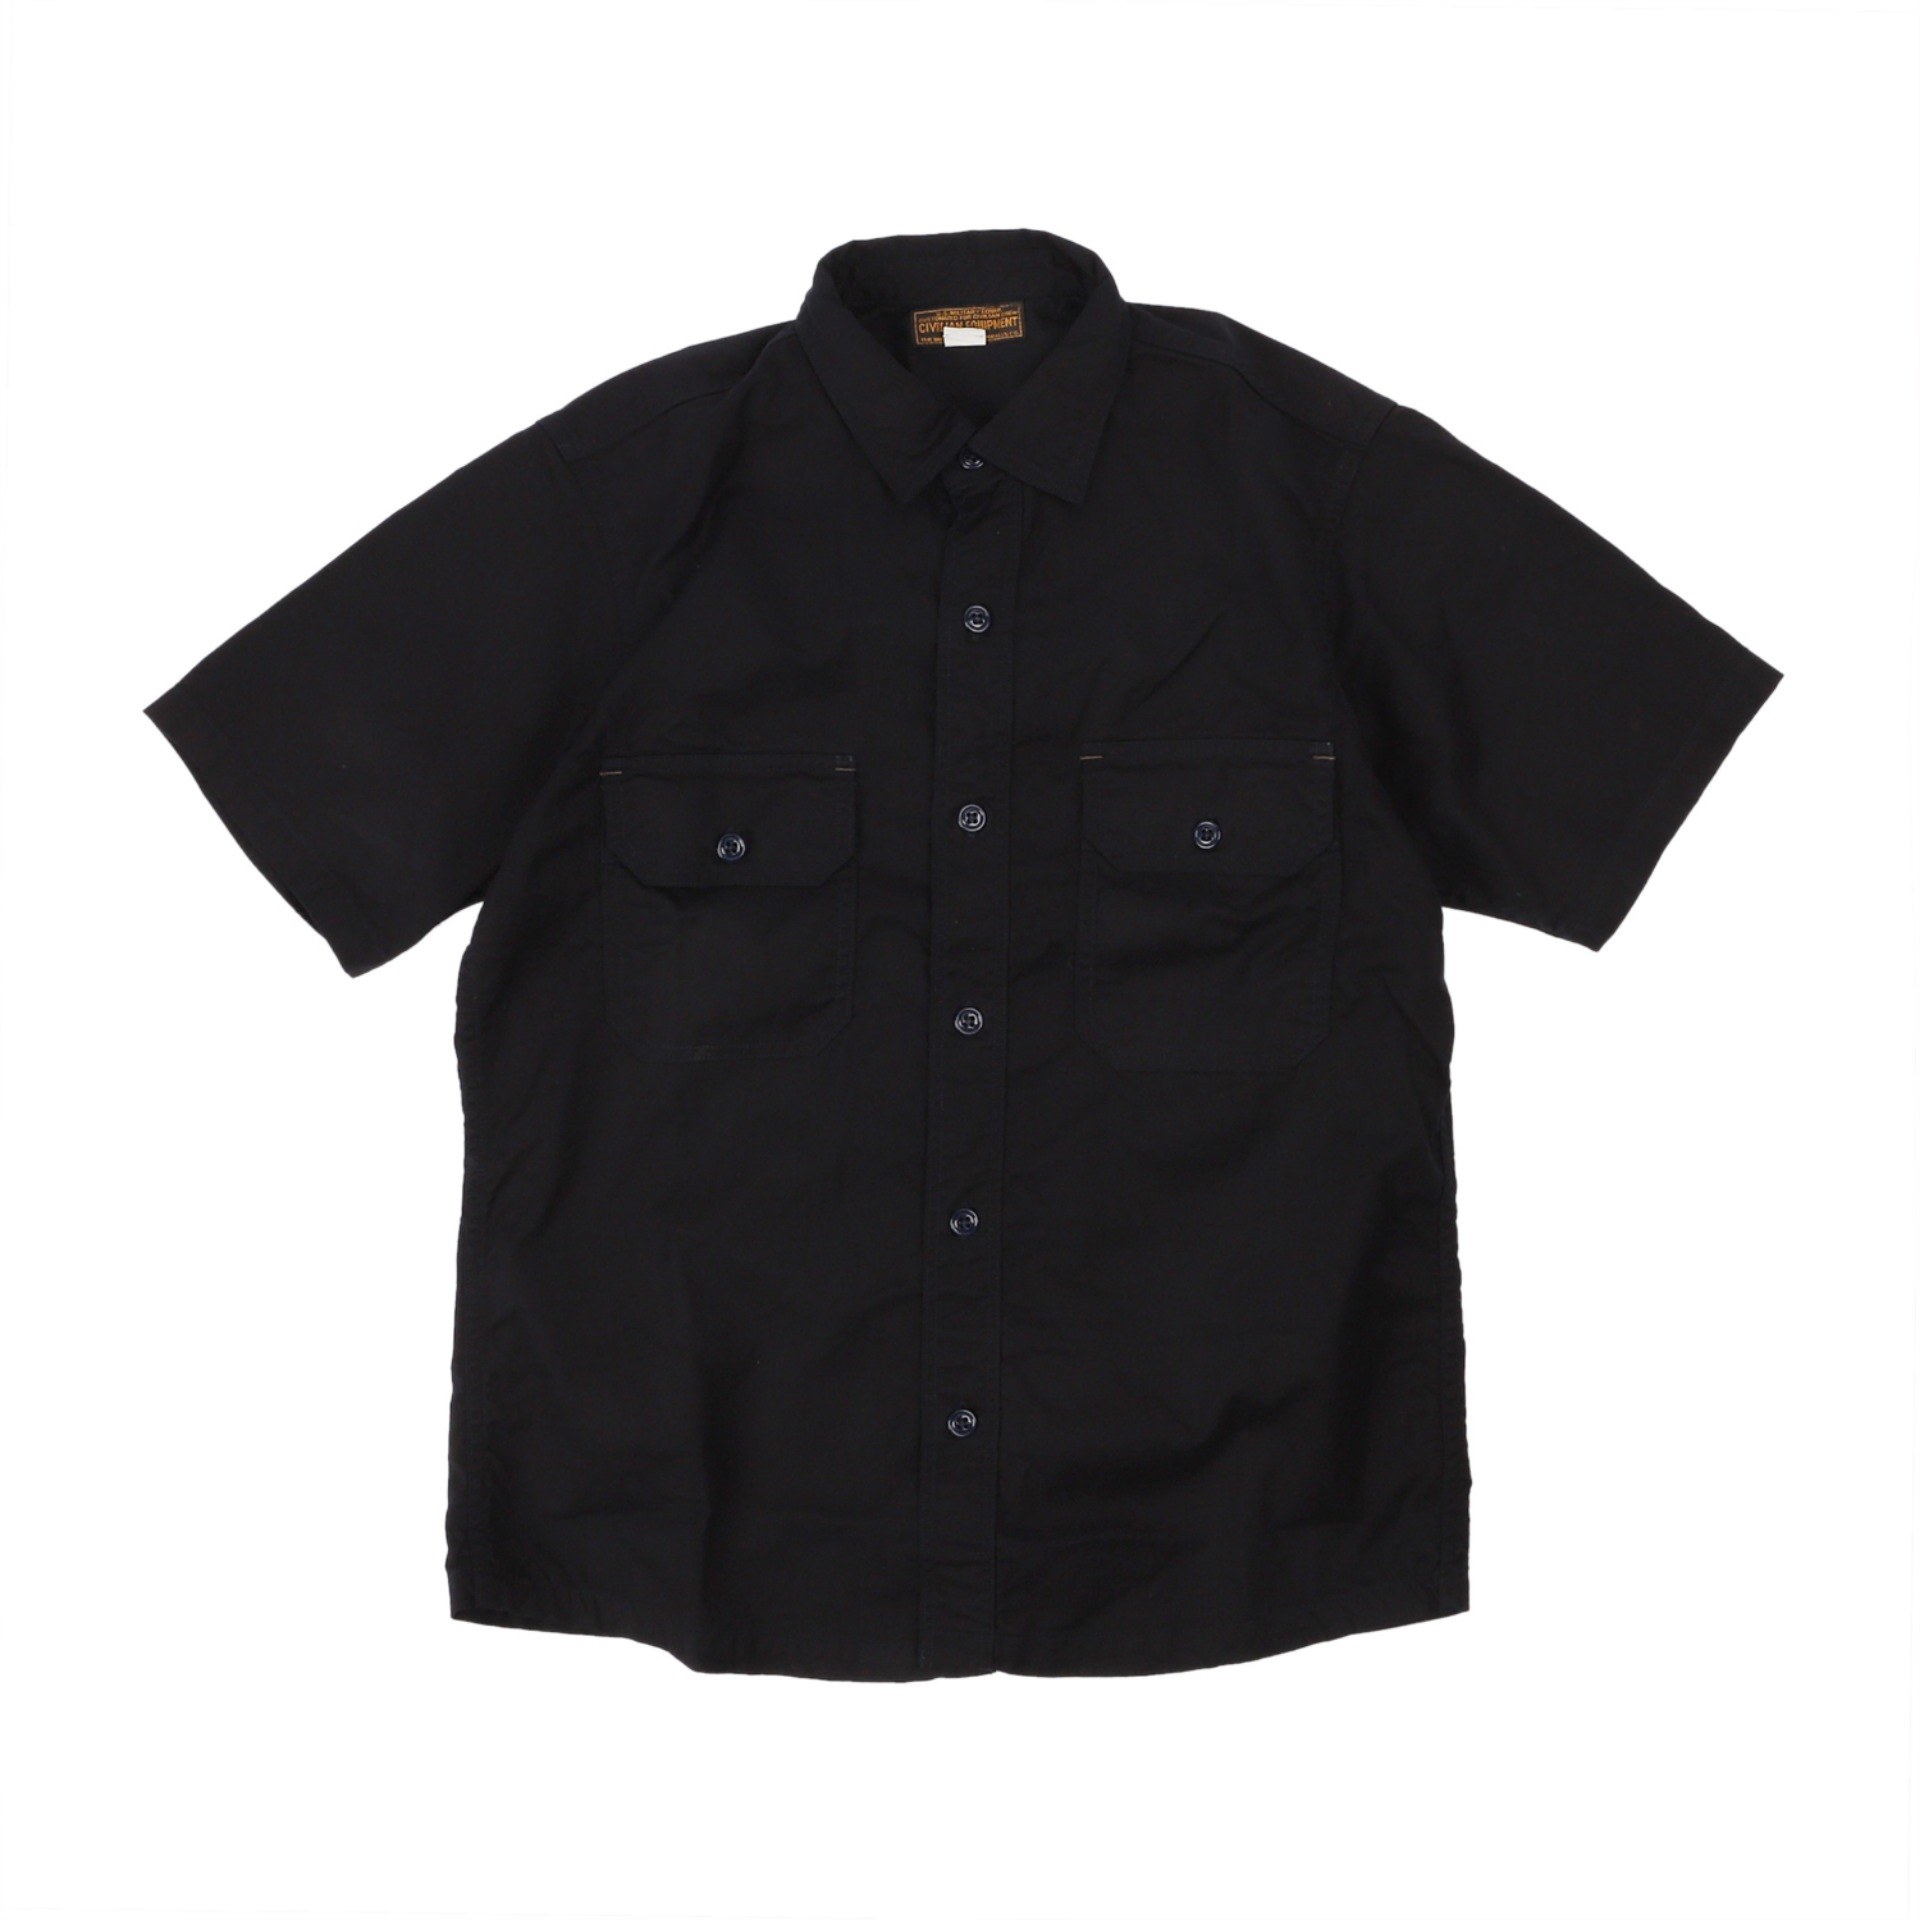 [The Union Special Overalls]CIVILIAN MILITARY  SHIRTSUTILITY SHORT SLEEVE SHIRT(Dark Navy)